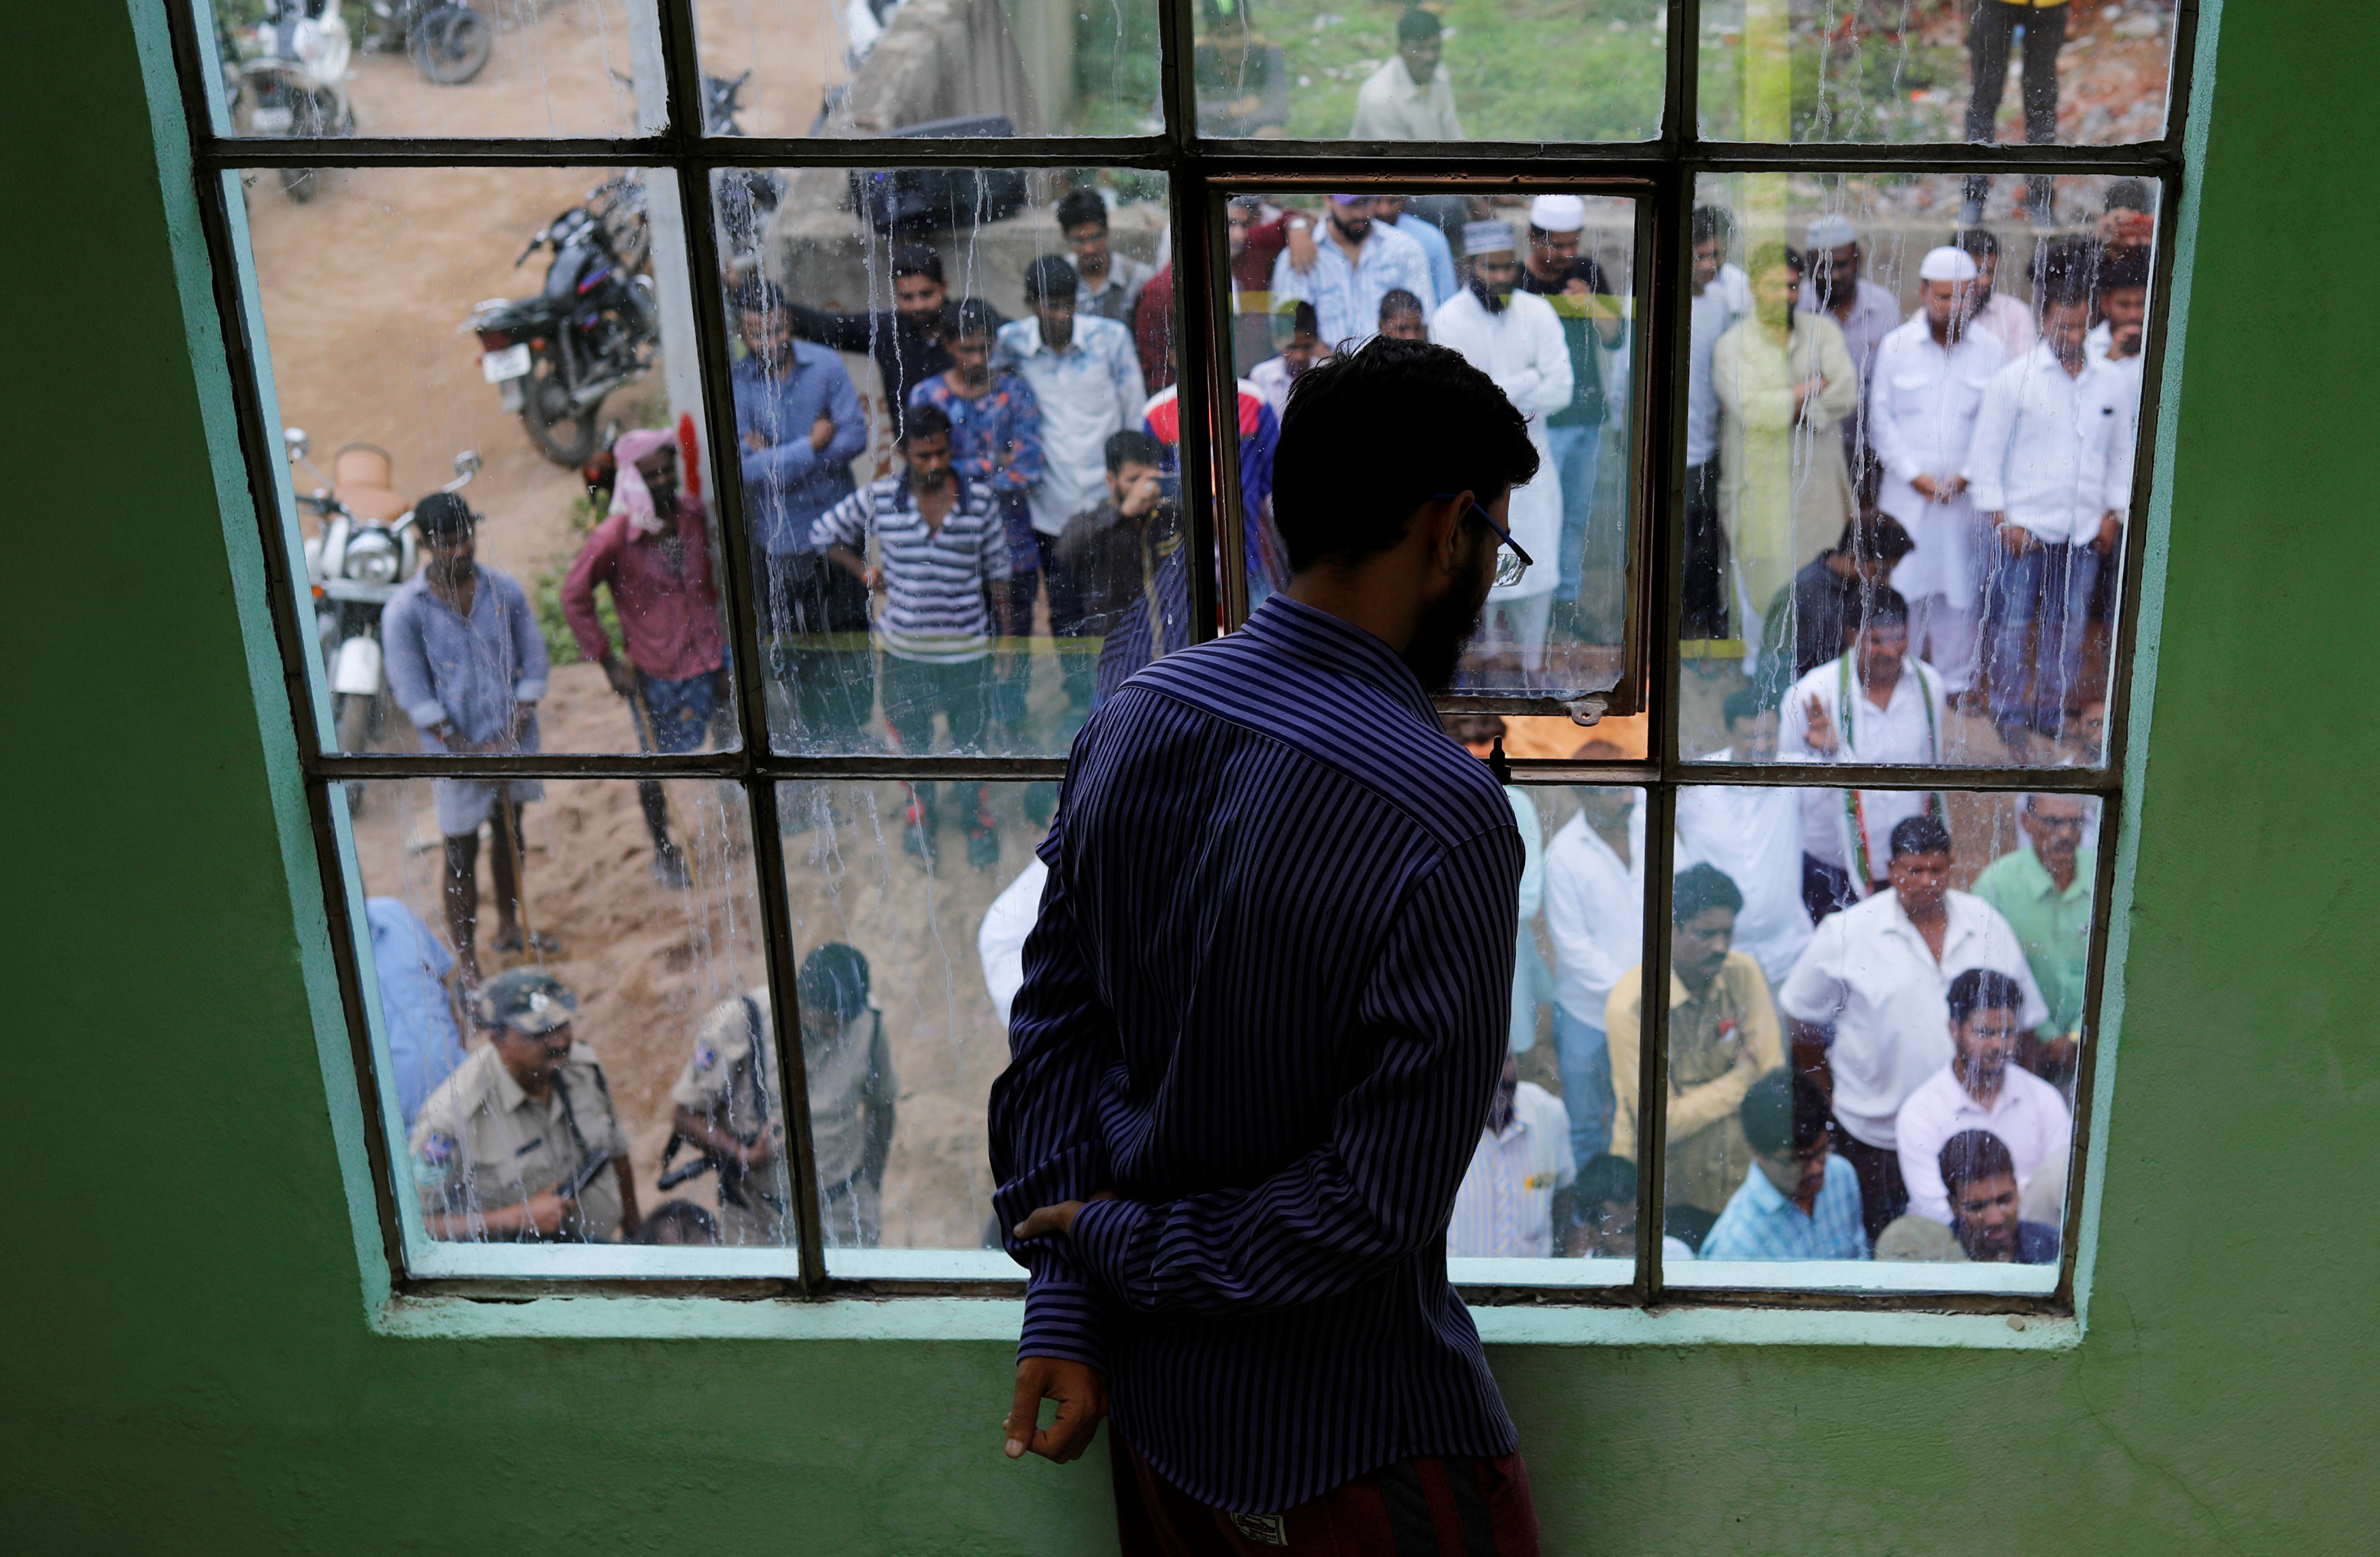 Mohammed Aslam, brother of Mohammed Azam, who was lynched by a mob, looks out of his house as people gather to give their condolences to the family in Hyderabad